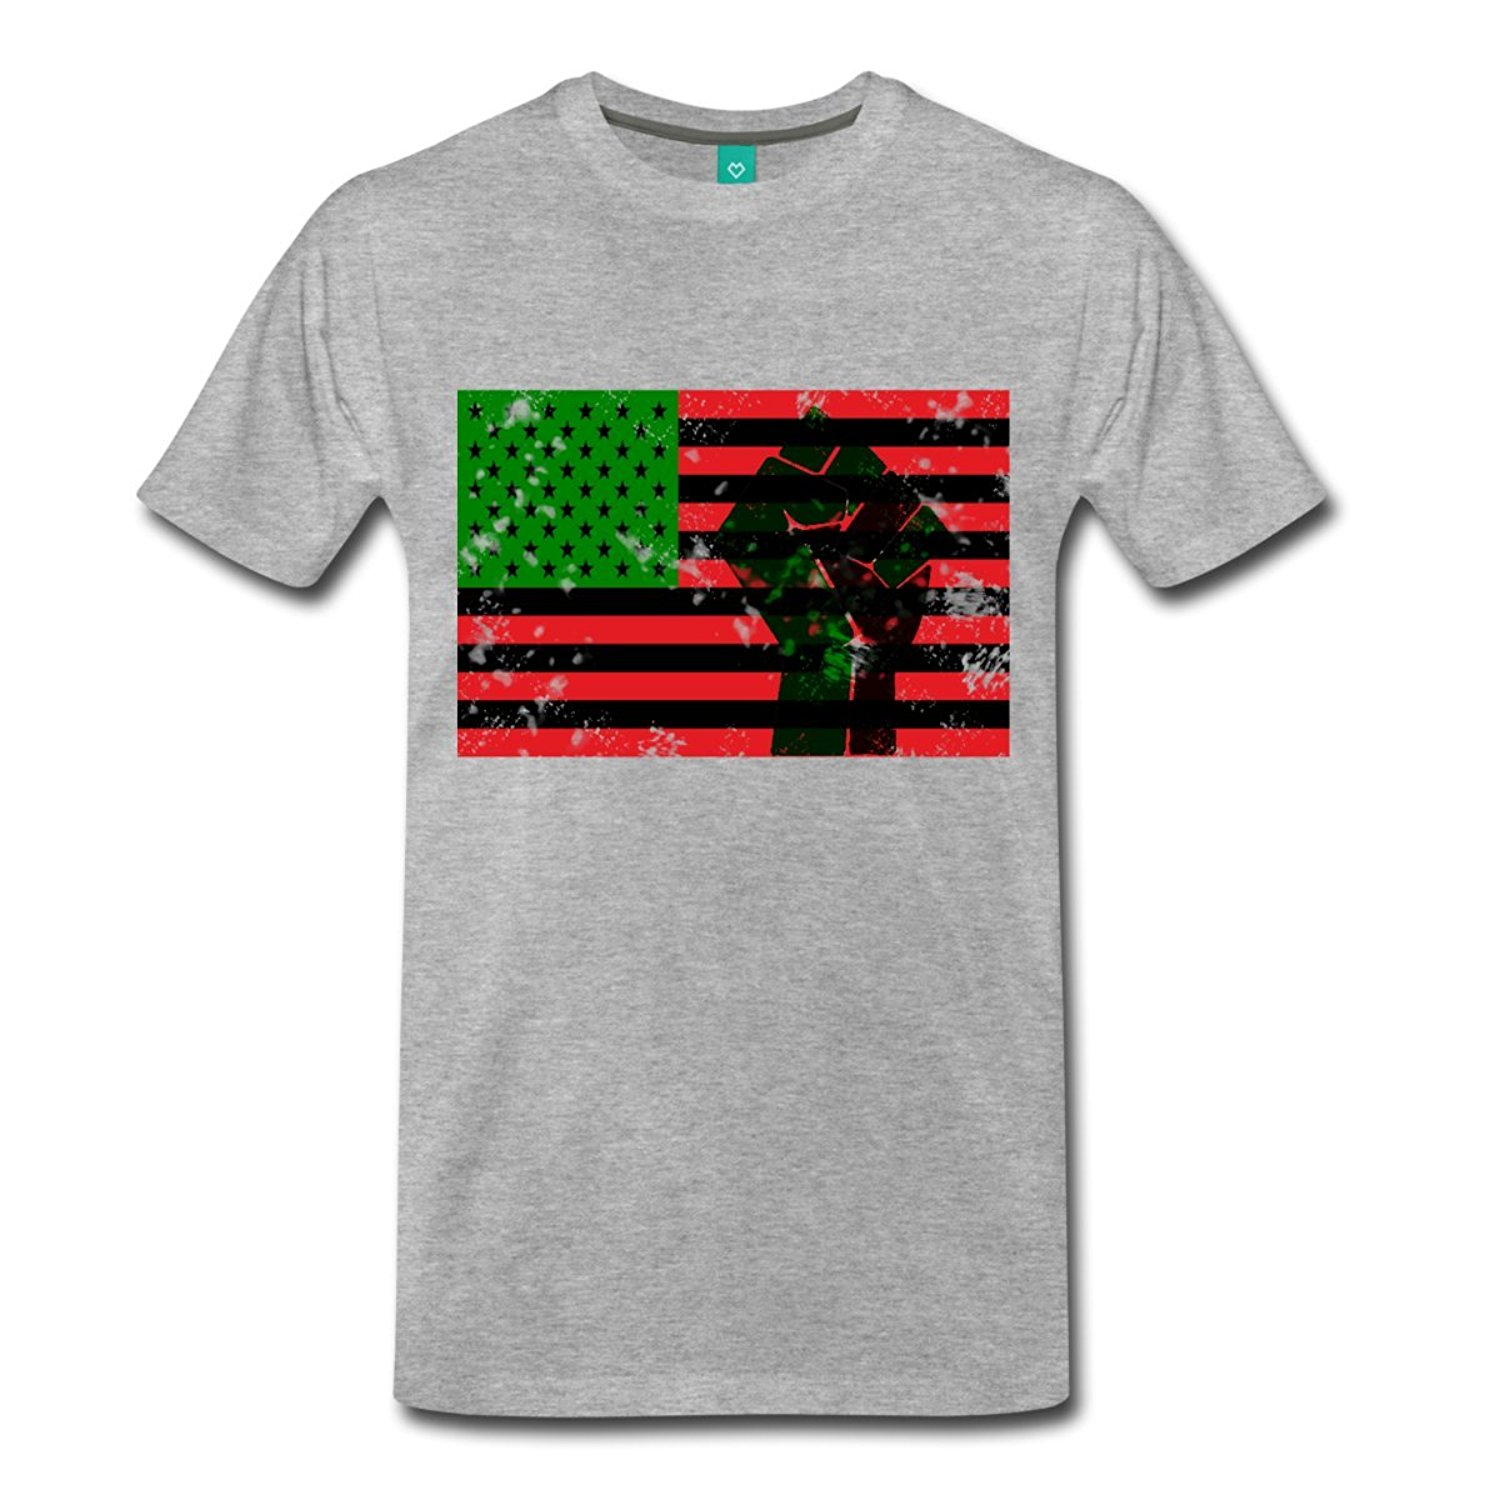 Pan African Flag With Fist Mens Premium T-Shirt Men T Shirt 2018 Summer 100% Cotton Newest 2018 MenS Fashion Fashion Classic